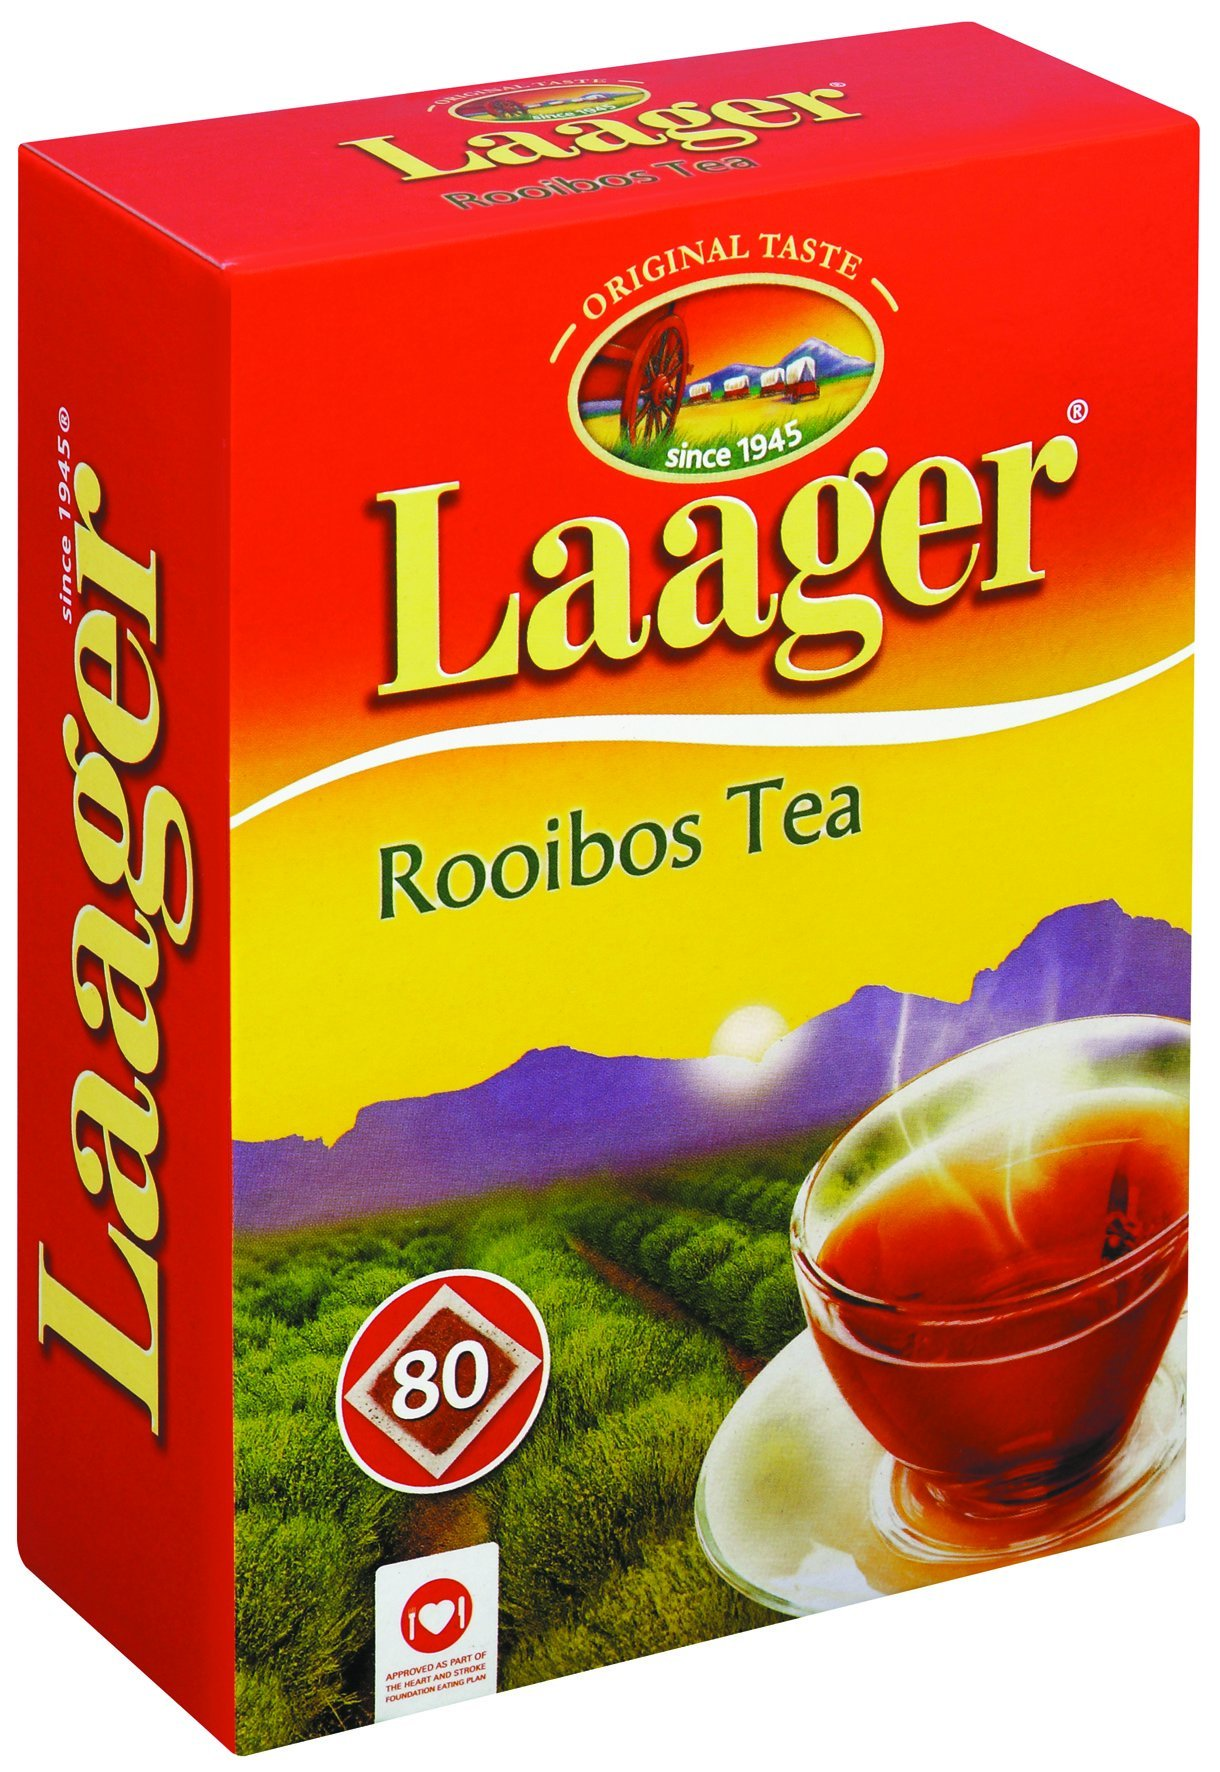 Laager South African Rooibos Tea - 80 count, 7 oz, 100% Natural Tea, Caffeine Free, Healthy and Pure, Red Bush Herbal Tea. Rich in Vitamins and Antioxidant (80 Count) by Laager